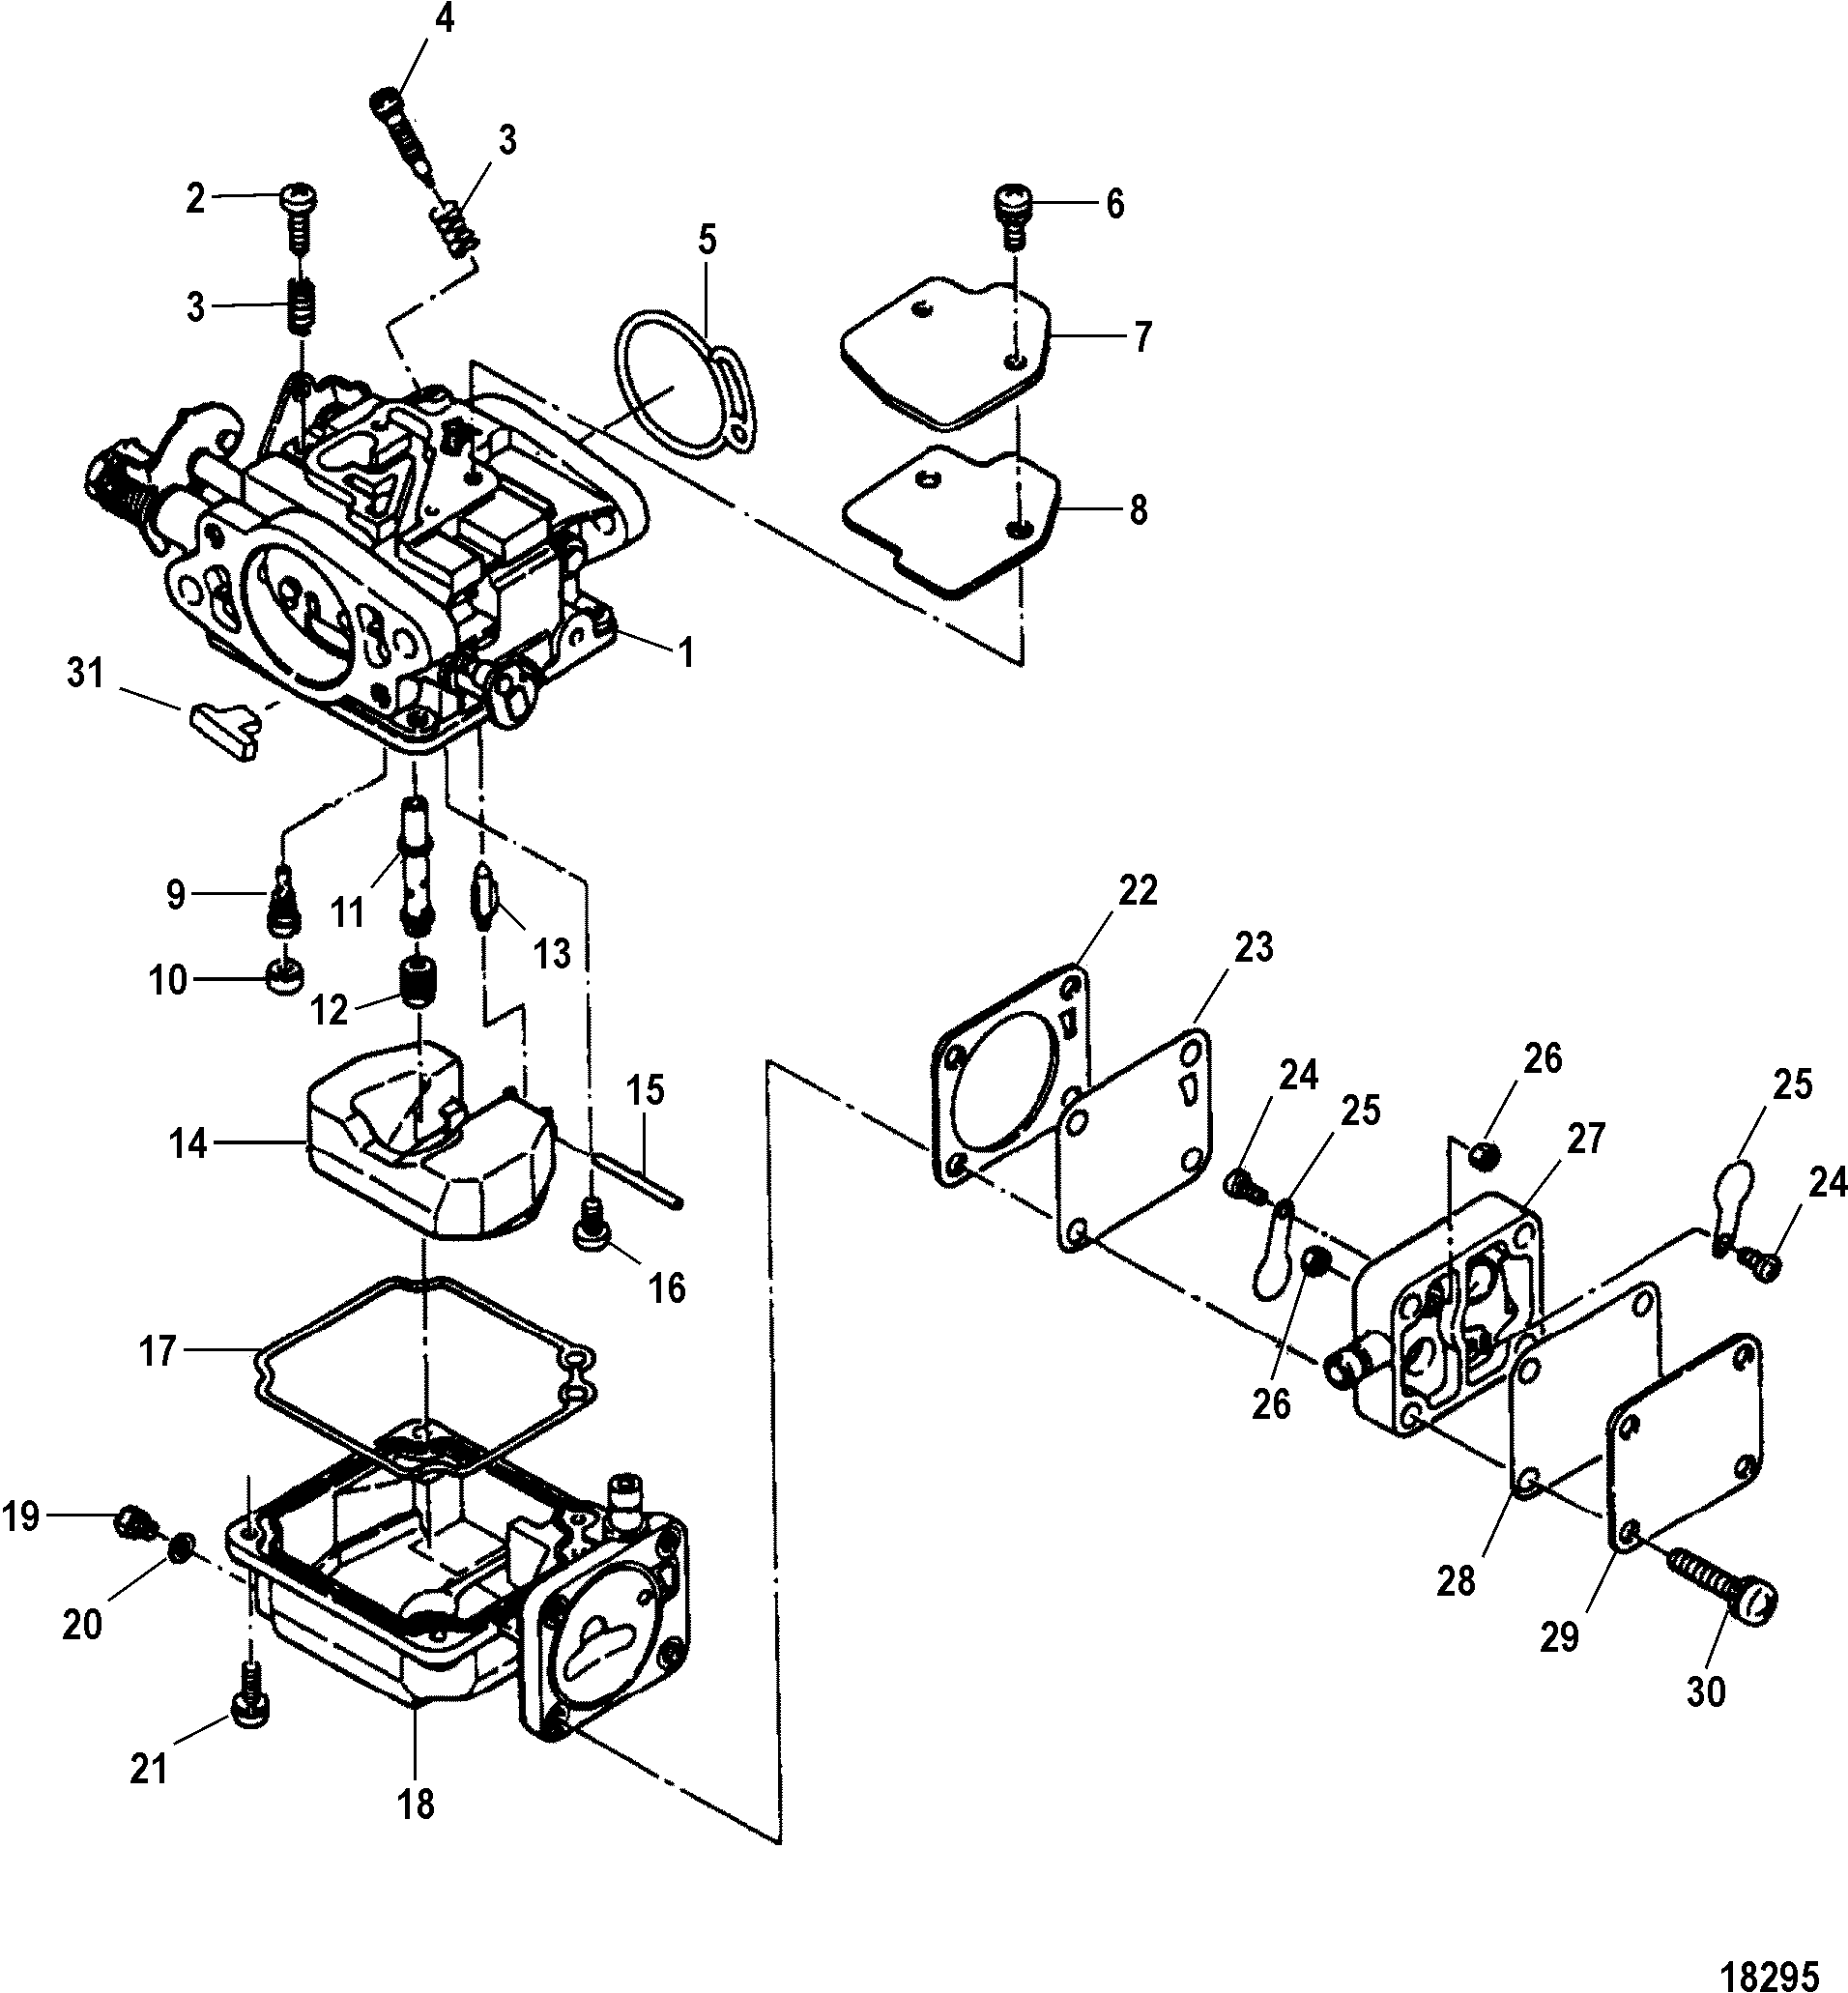 hight resolution of 9 mercury outboard engine parts diagram 9 free engine 1996 force 120 outboard wiring mccormick xtx